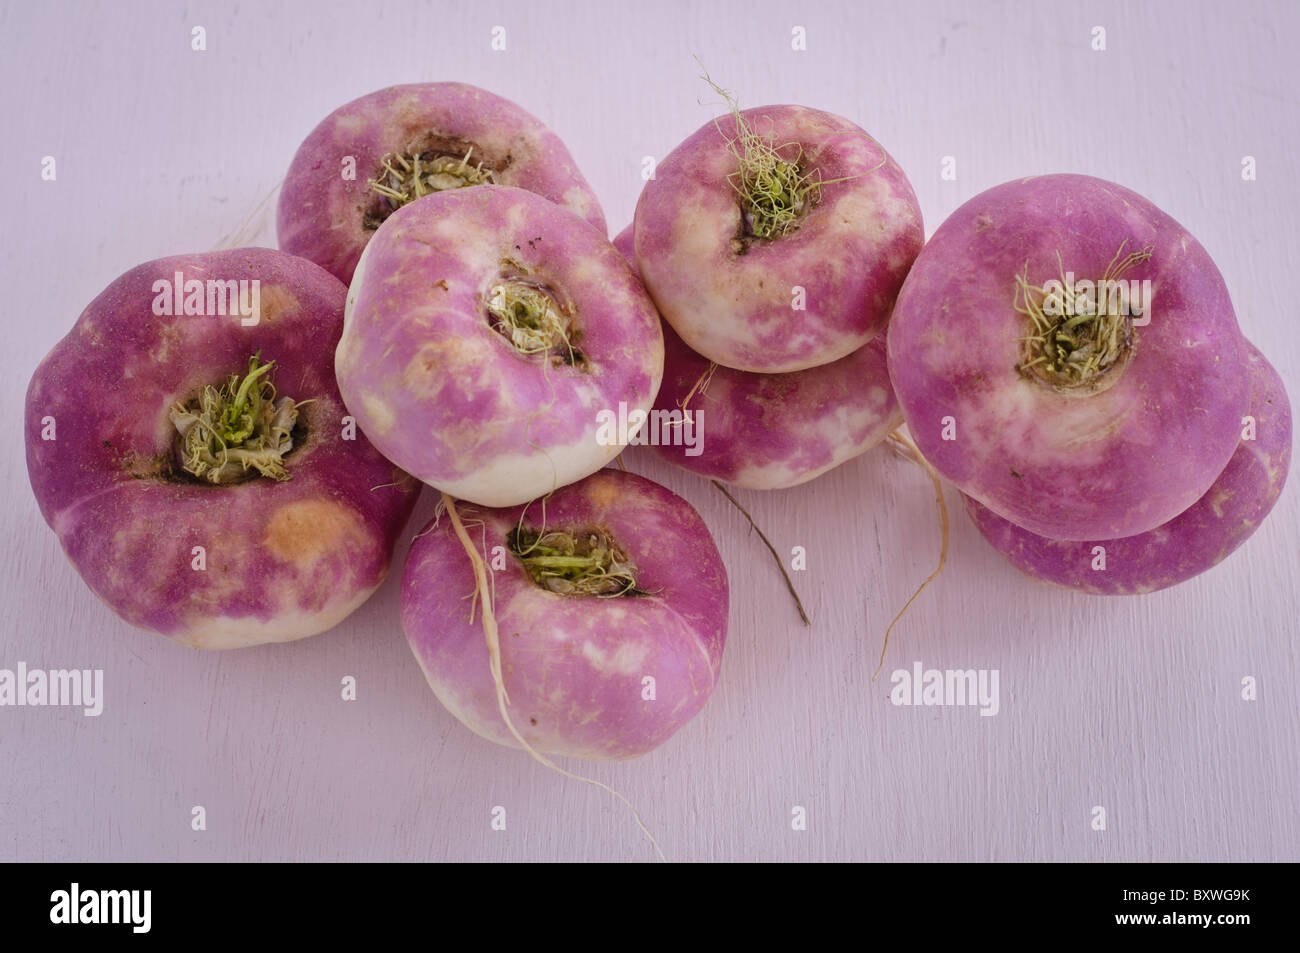 Pink turnips on pink surface - Stock Image